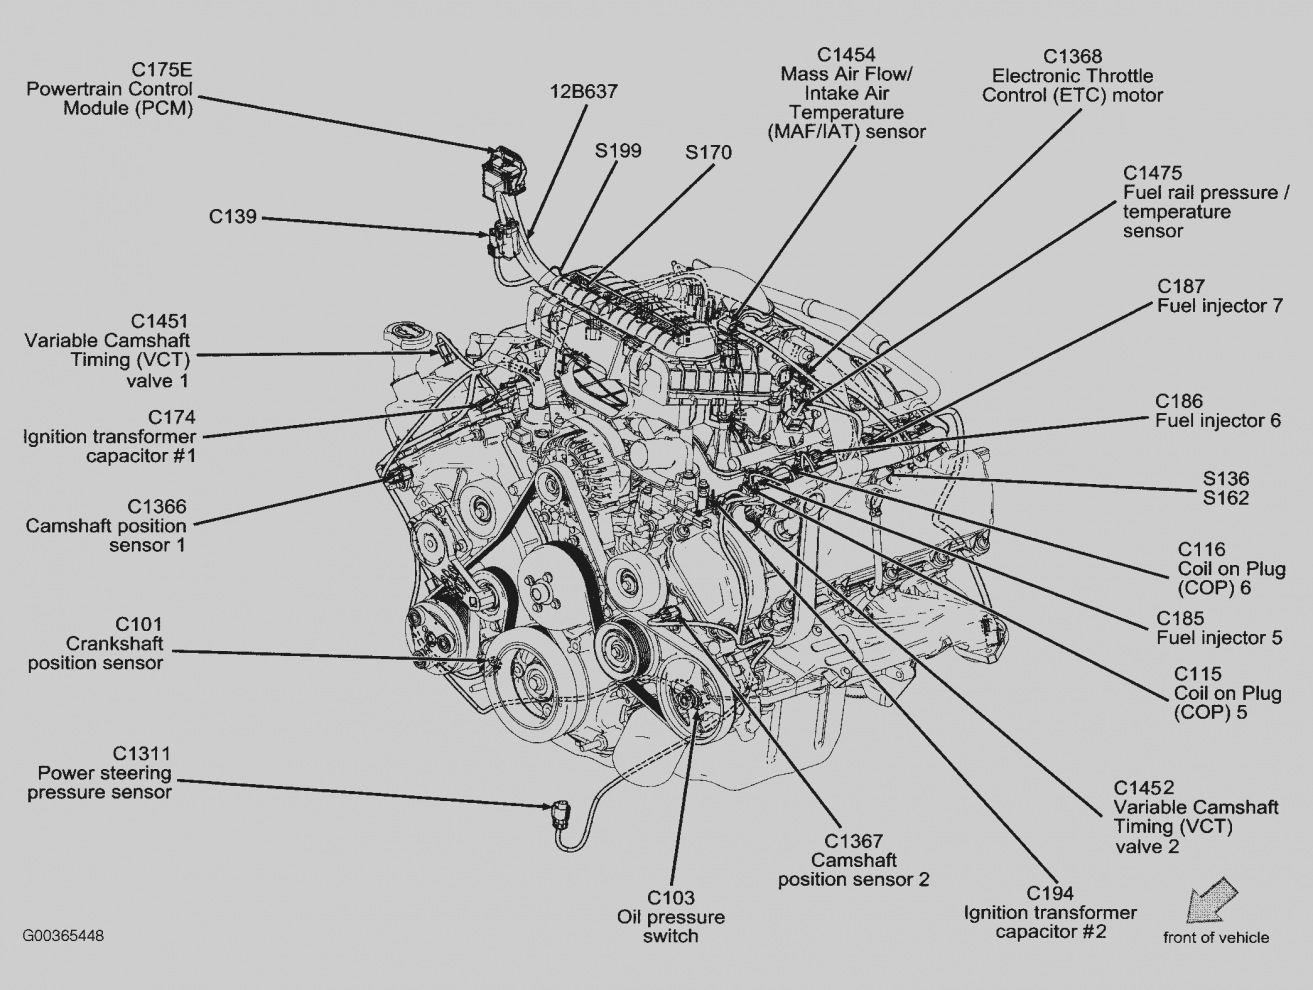 medium resolution of 2011 5 0 ford f 150 engine diagram wiring diagram for you 2011 5 0 f150 engine coolant diagrams